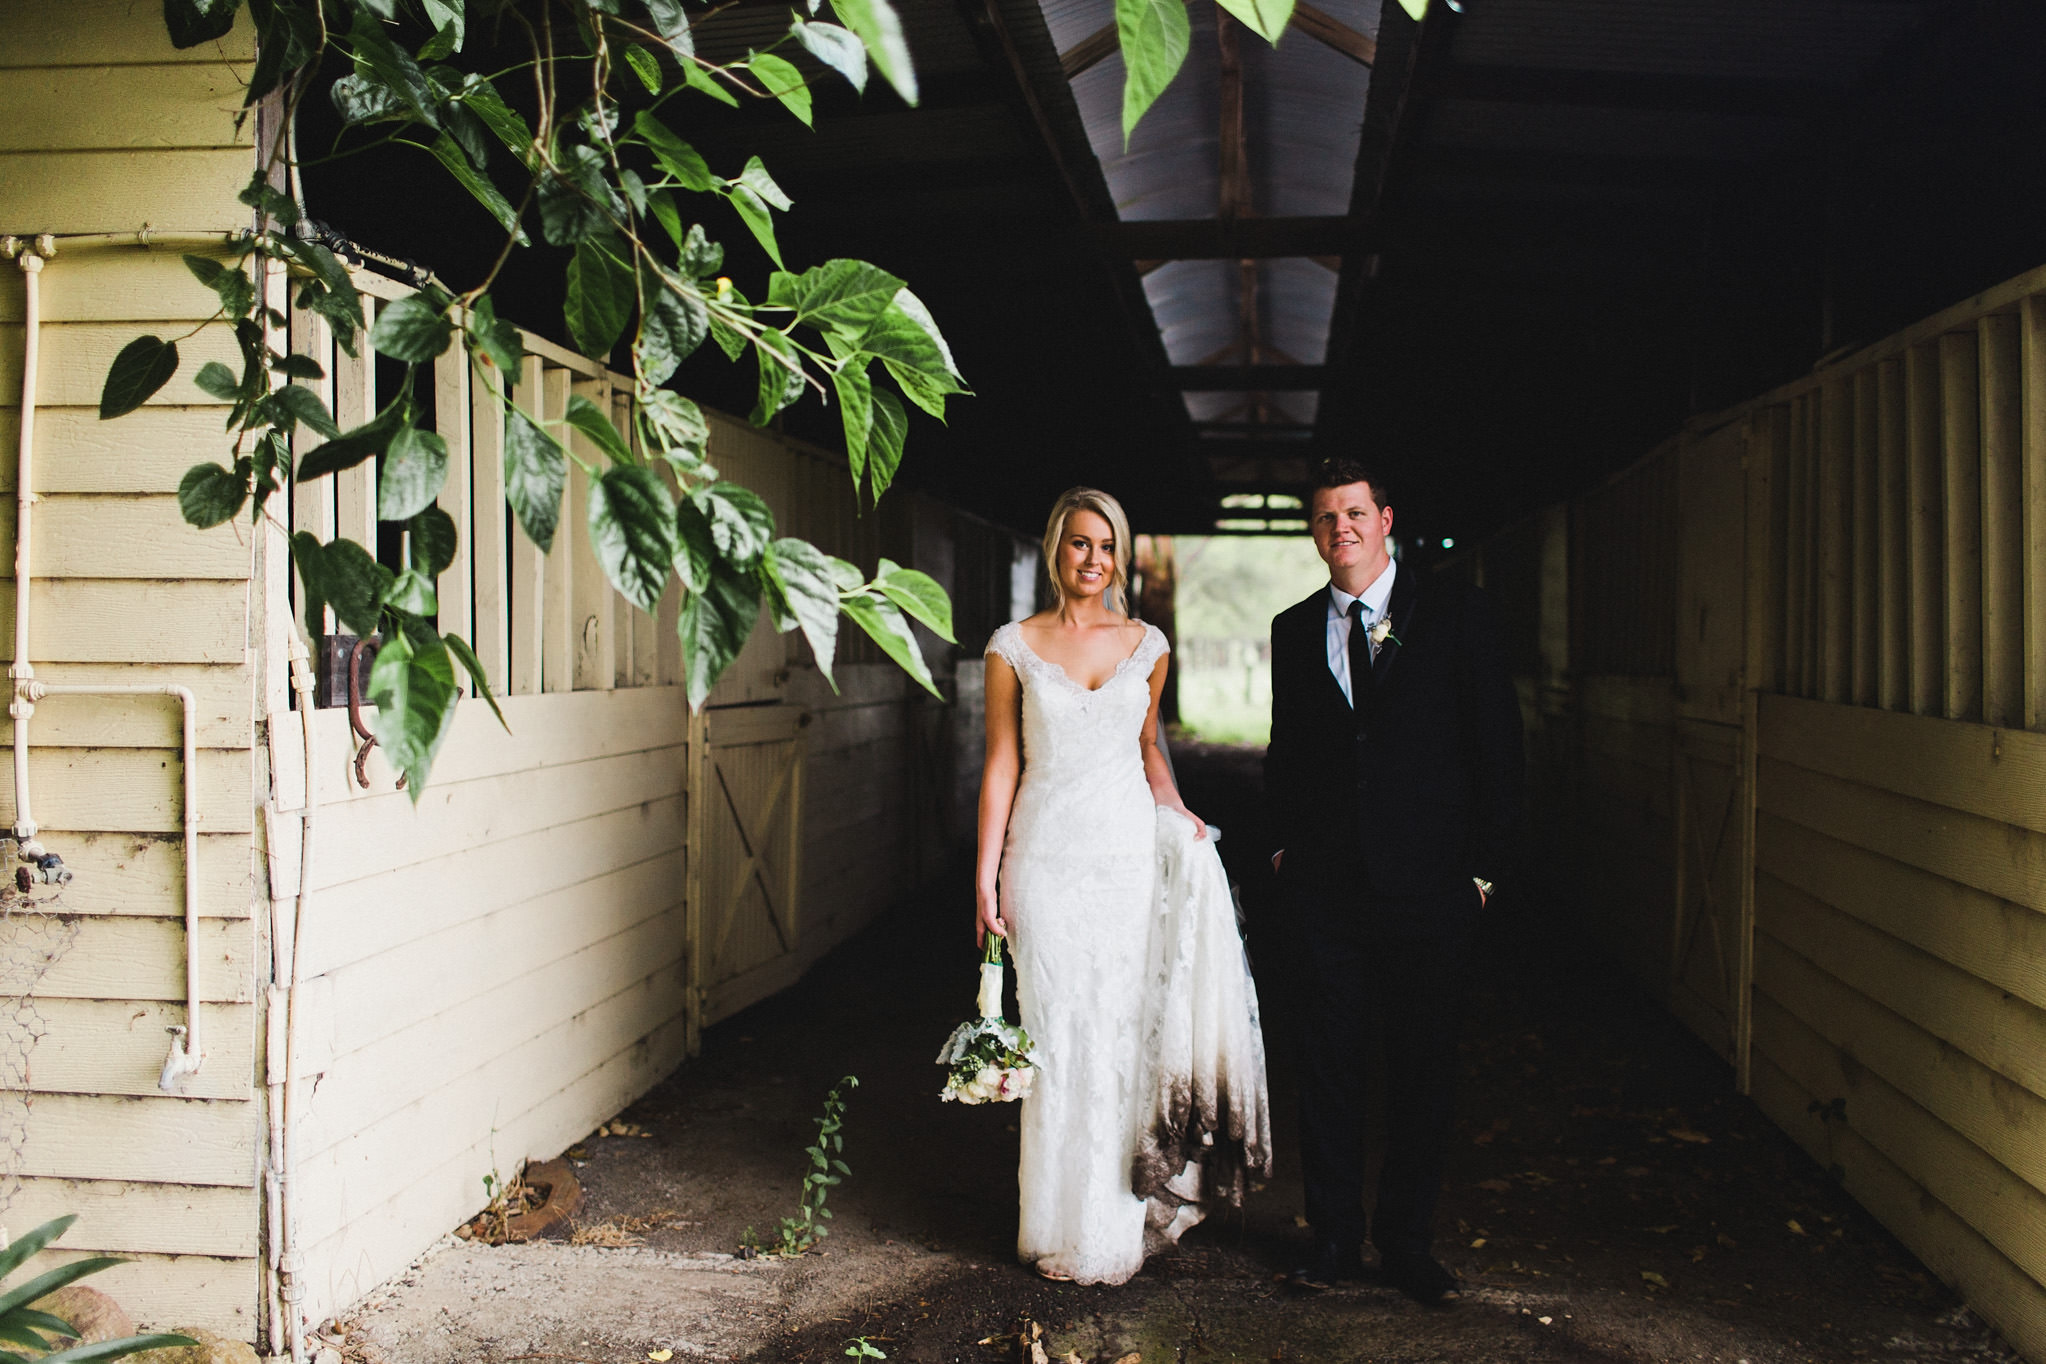 Wedding_Photographer_Newcastle_JoMatt-1099.jpg